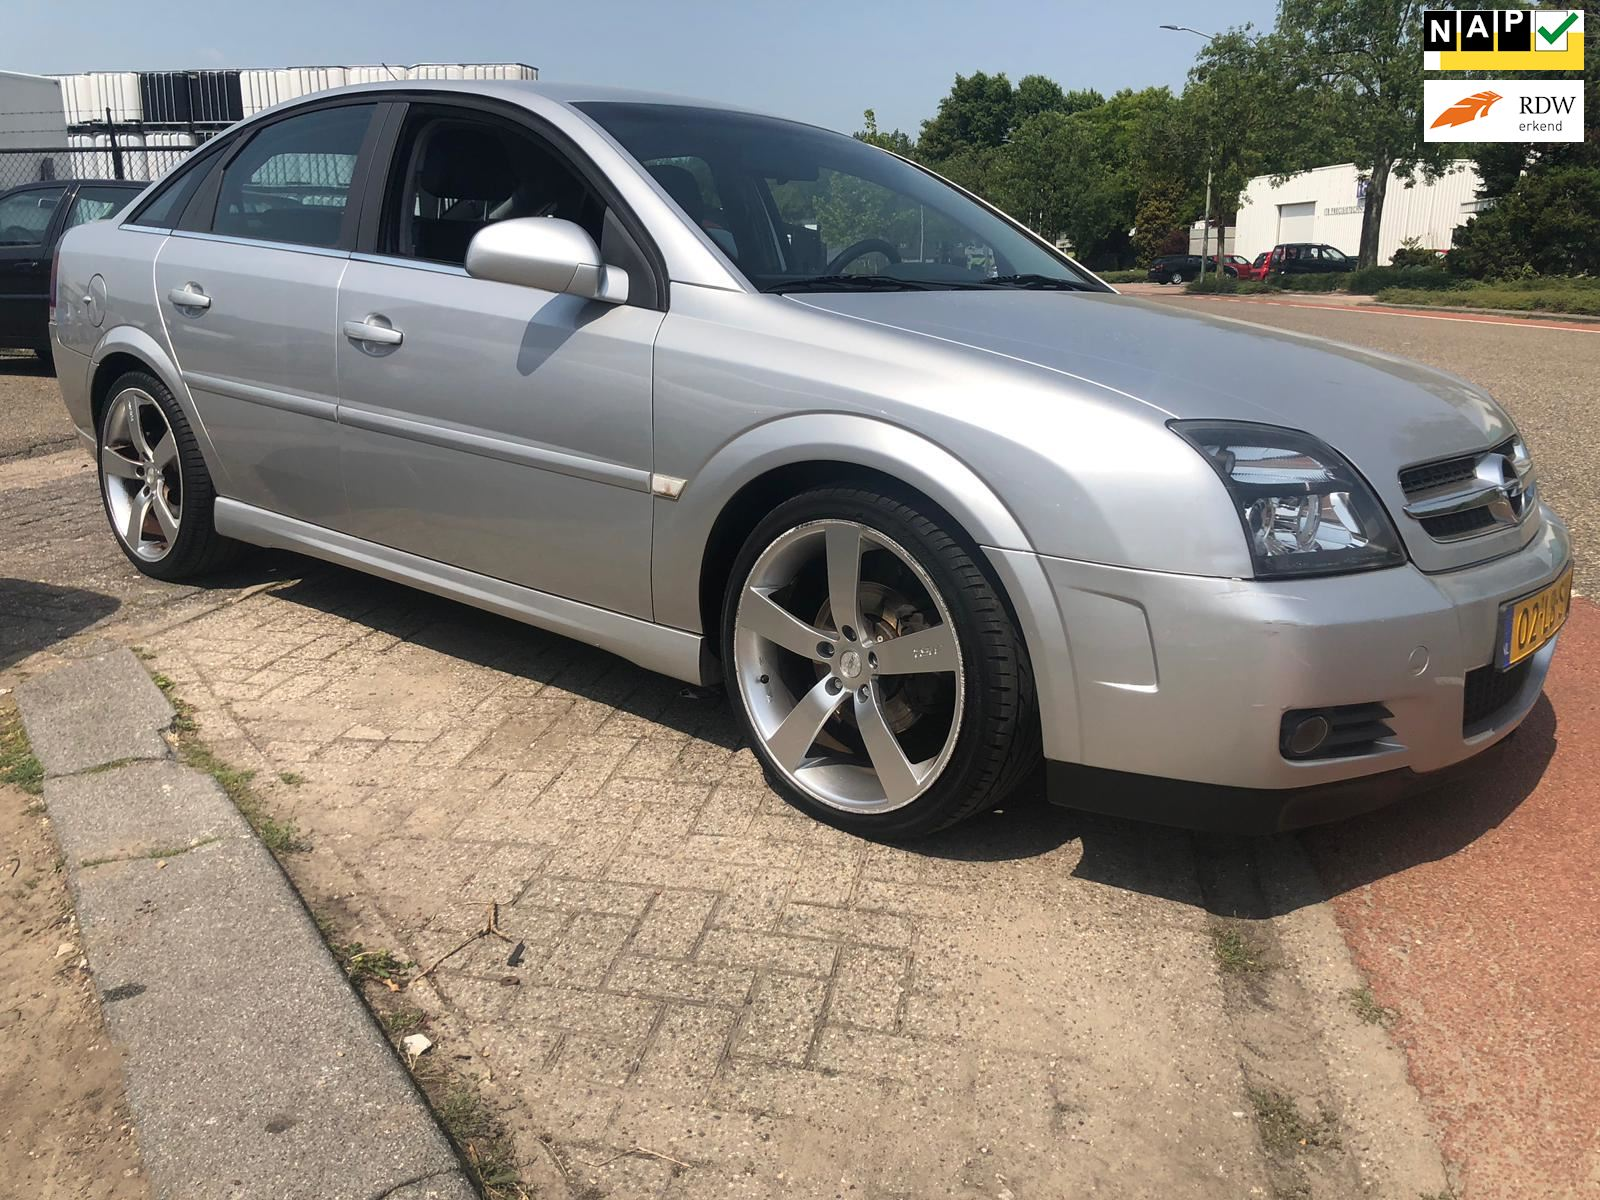 Opel Vectra GTS occasion - A2 Auto's